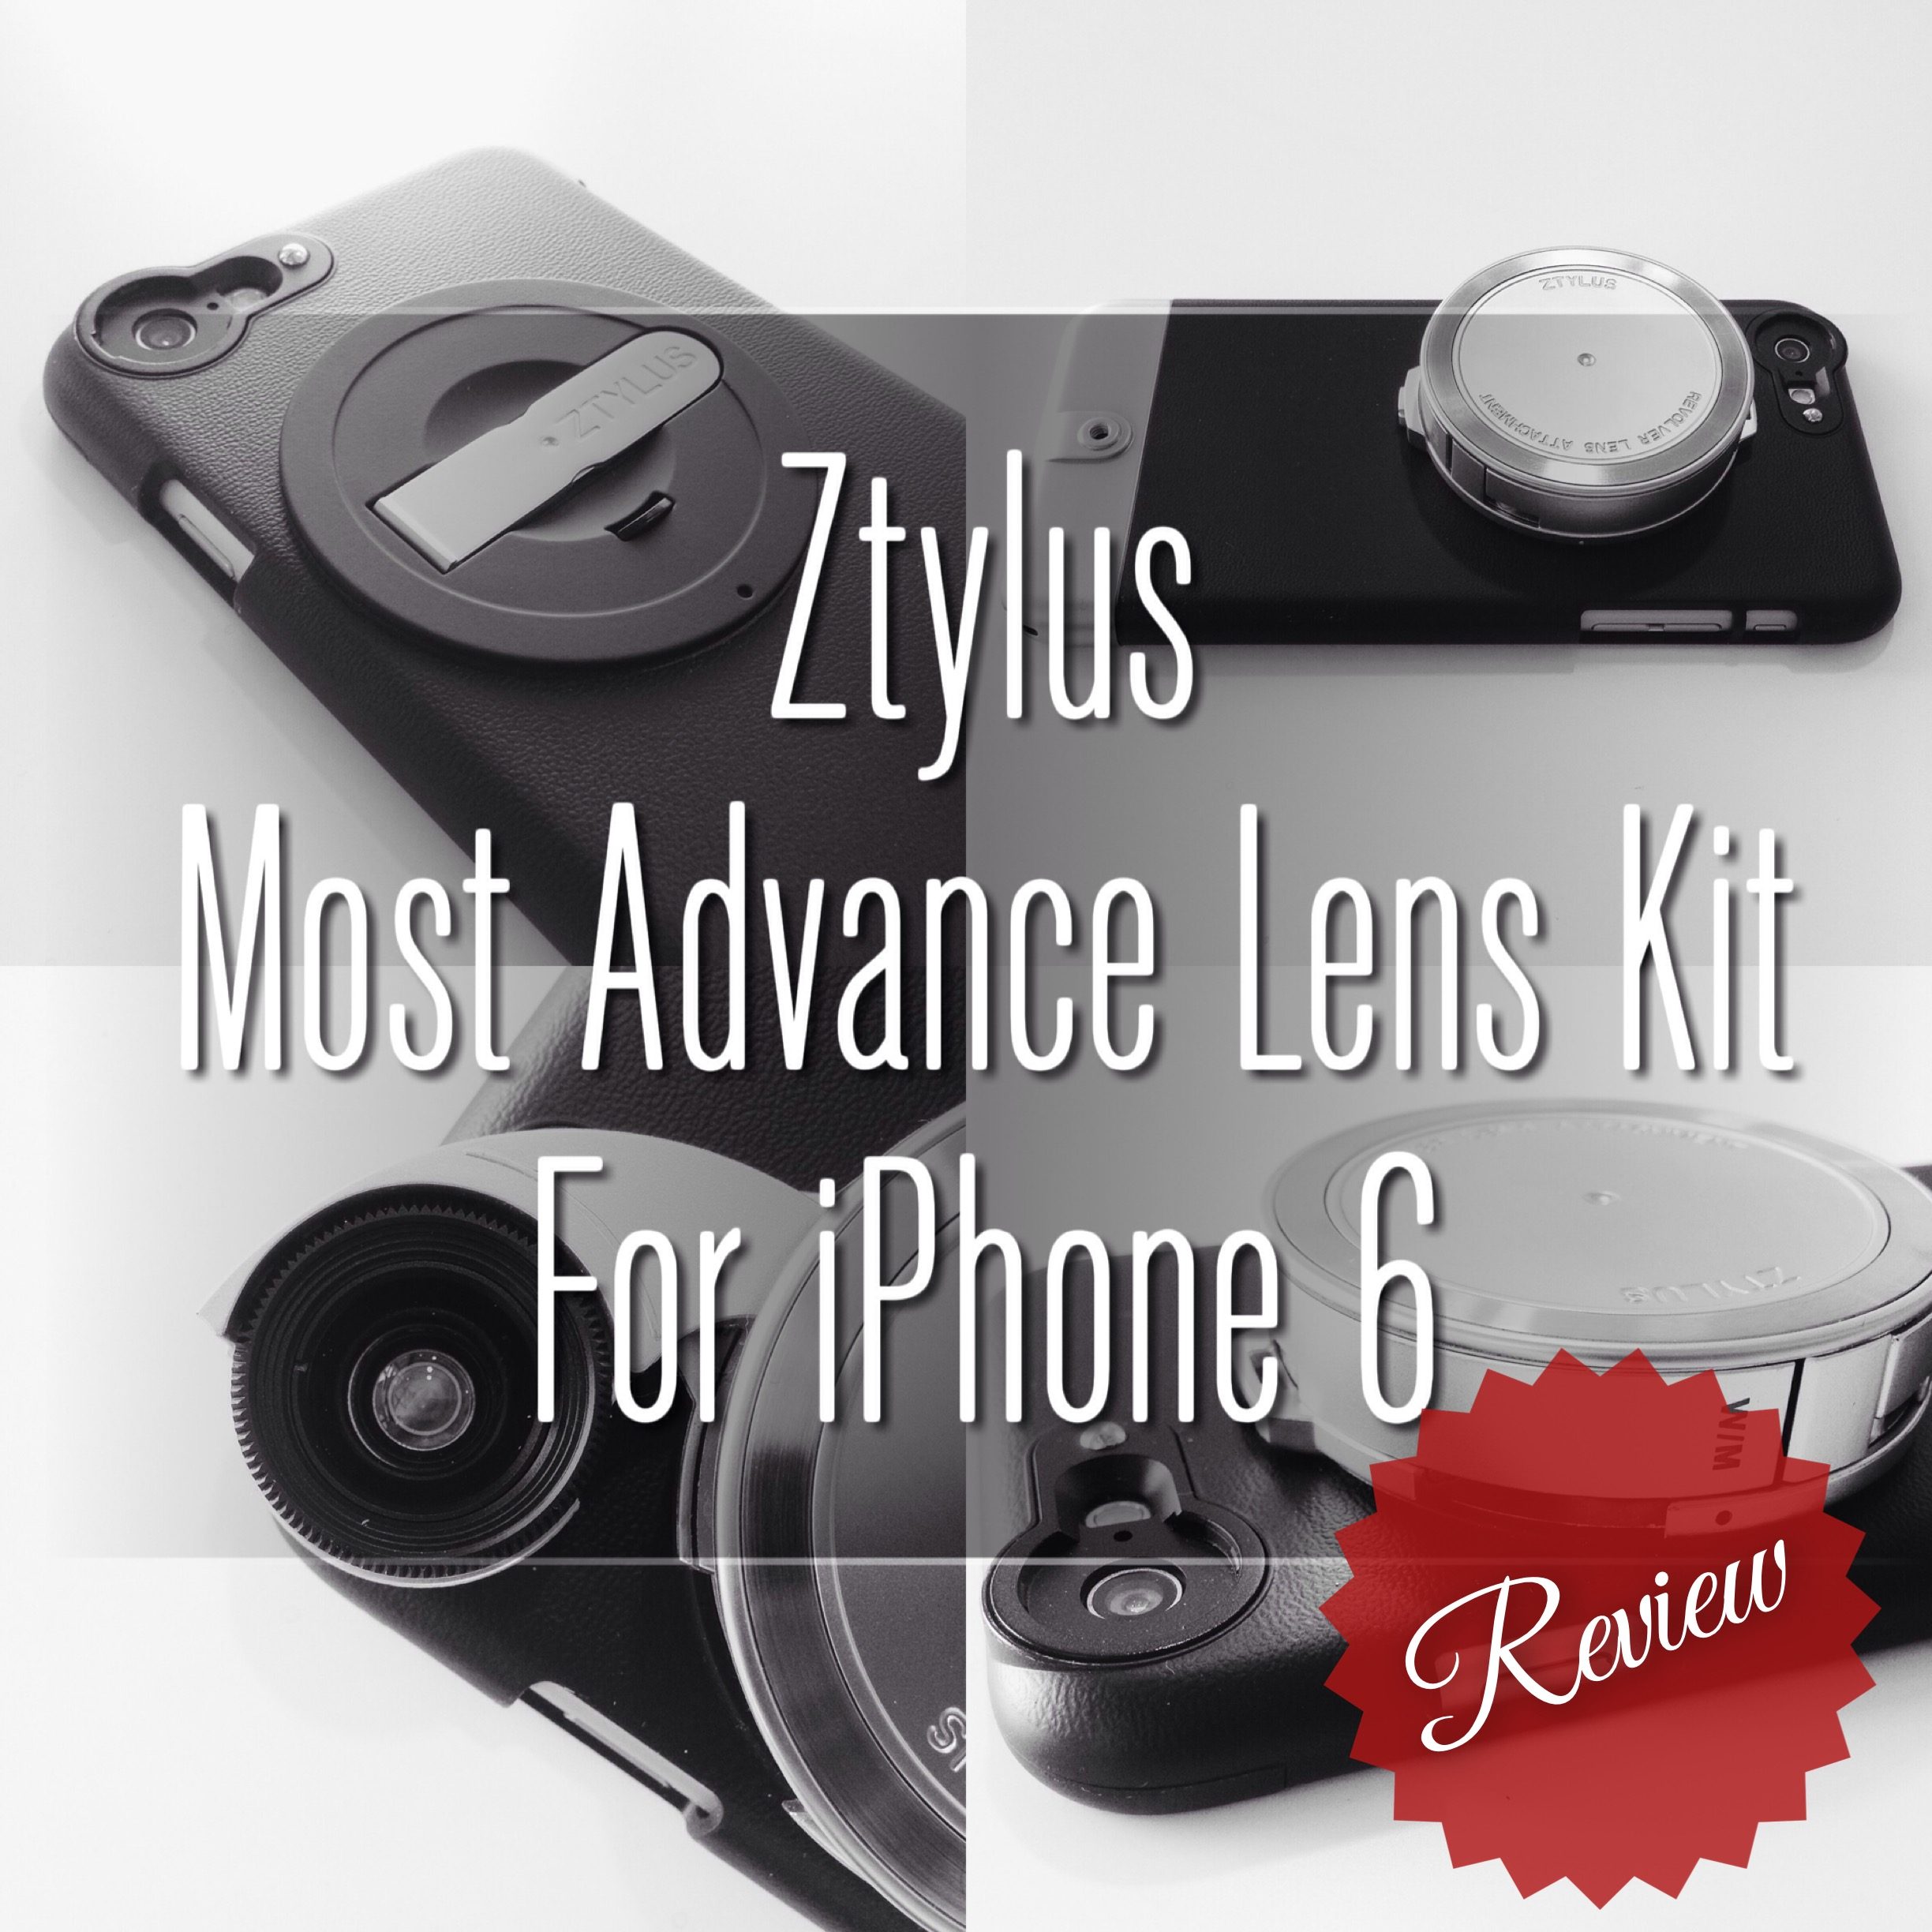 Ztylus - Most Advance Lens Kit for iPhone 6/6 Plus